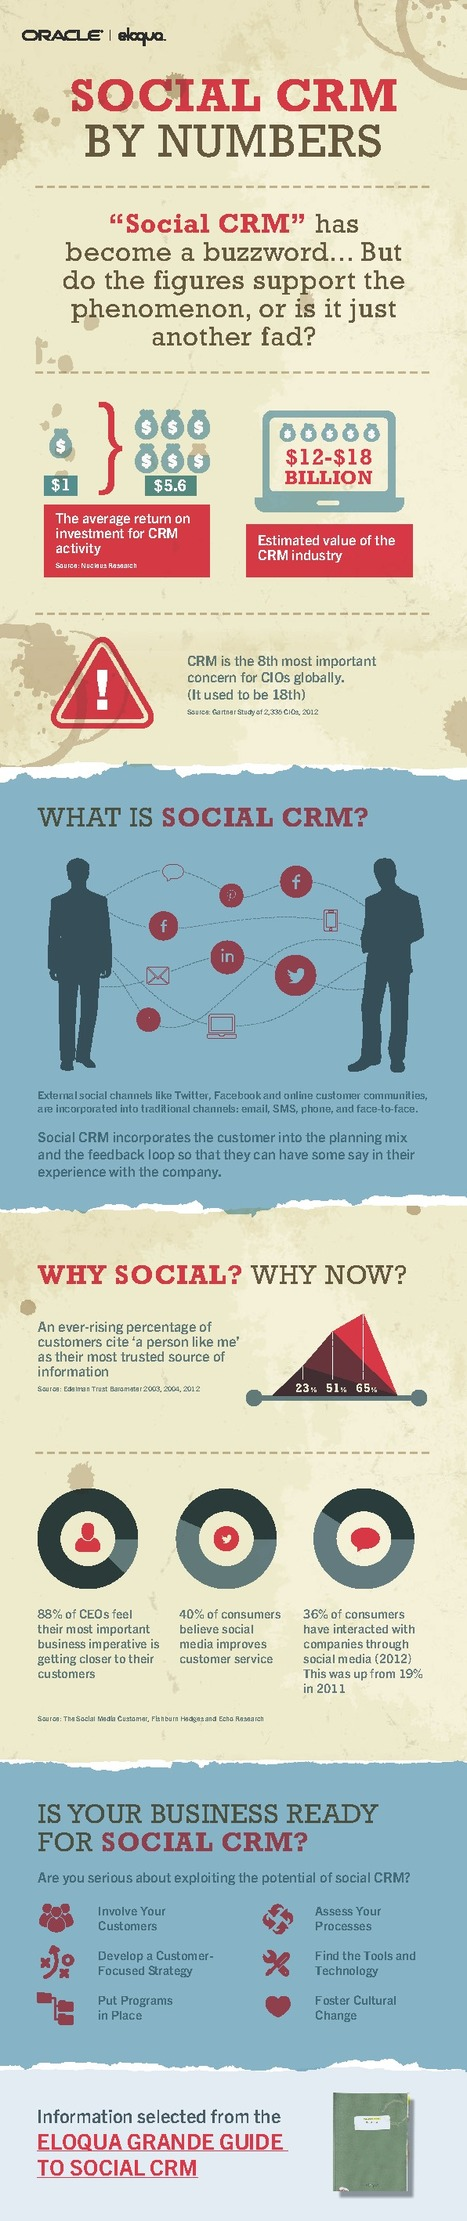 Social CRM by Numbers [Infographic] — Eloqua   The Marketing Technology Alert   Scoop.it